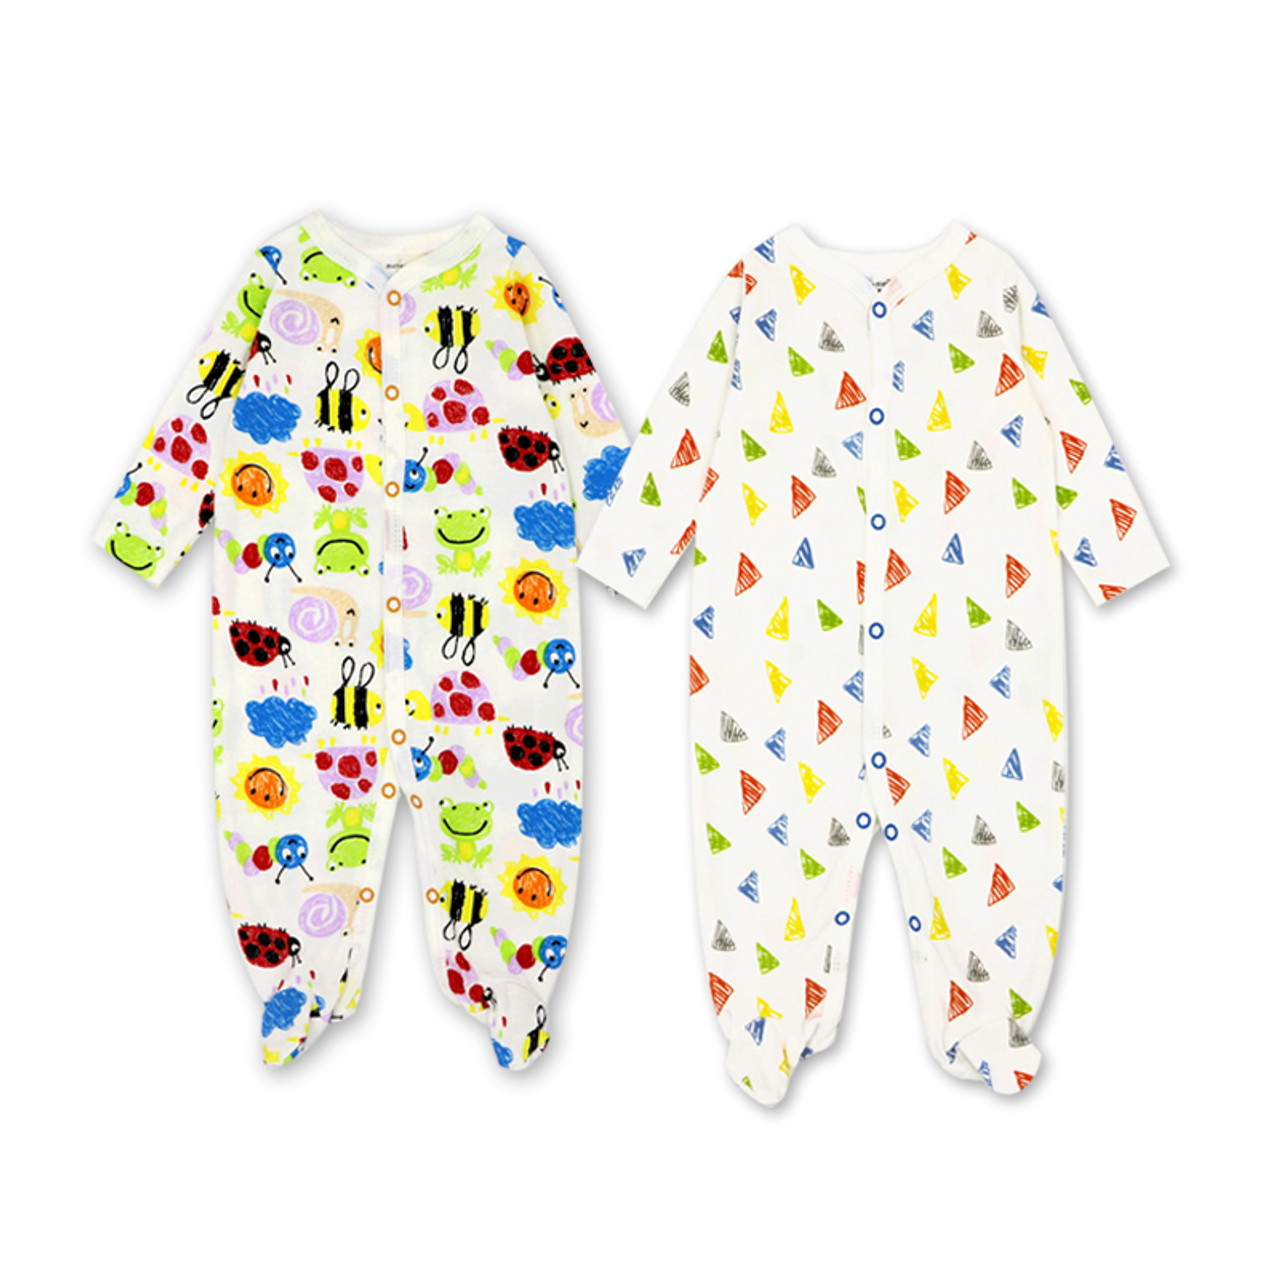 08879507fde6c ... tender Babies 2/3Pcs/set Fashion Cotton baby rompers newborn girl  clothes Long Sleeve ...